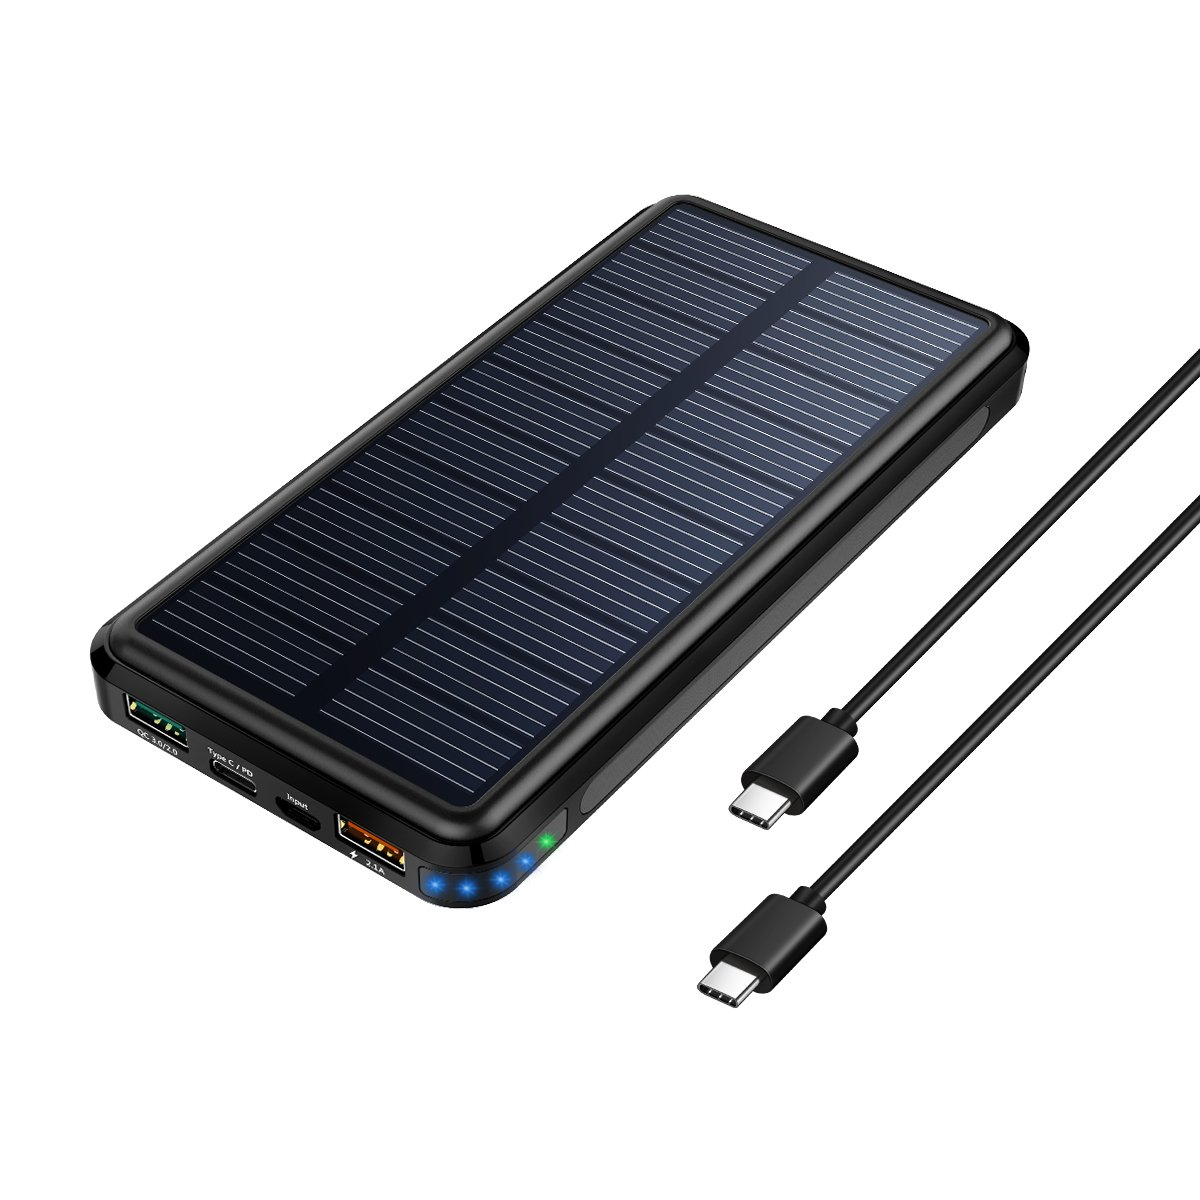 Solar Charger, 24000mAh Solar Power Bank with QC 3.0 and Type C/PD Input/Output, Portable Charger for Nintendo Switch, Type C Laptop, Tablet and Android Phone by Dizaul